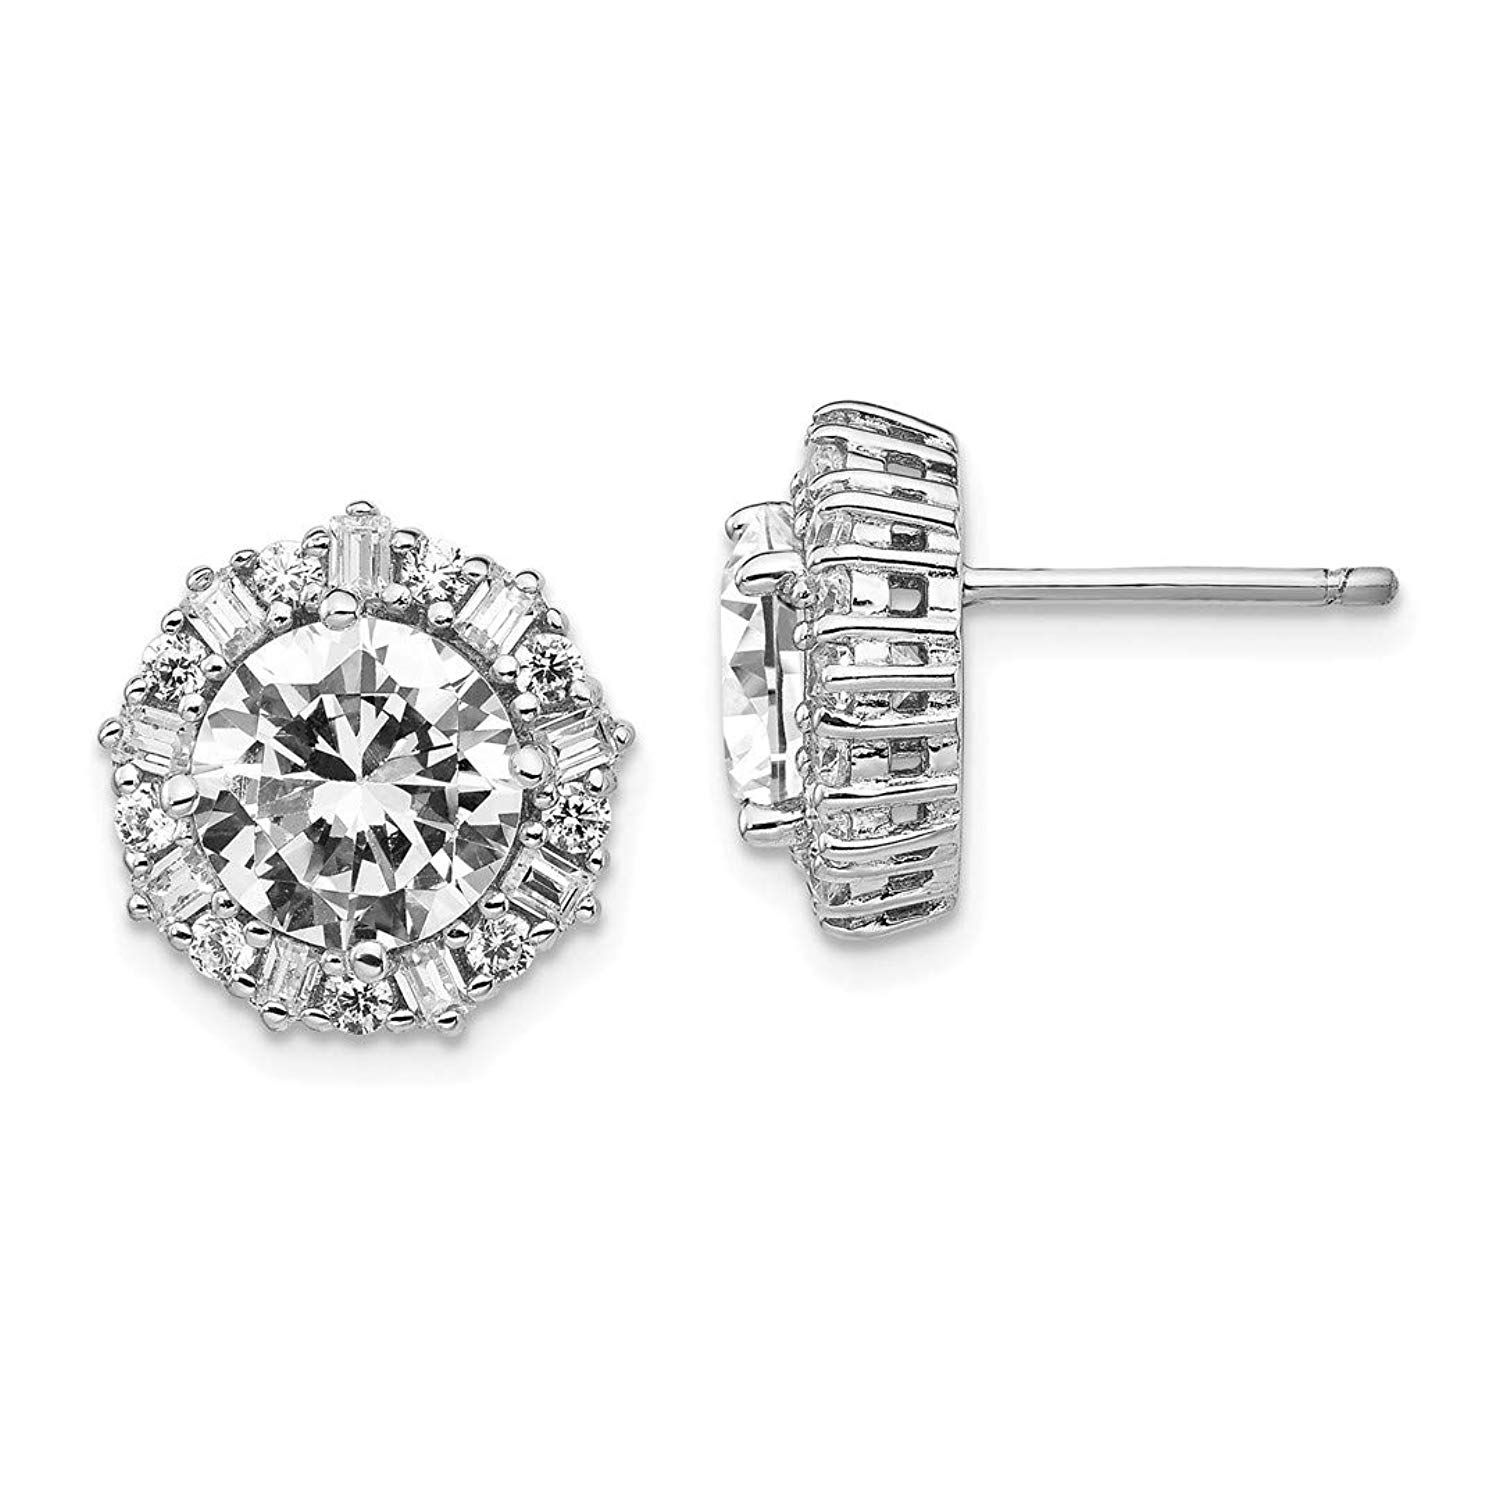 925 Sterling Silver Round Cubic Zirconia Cz Halo Post Stud Earrings Ball Button